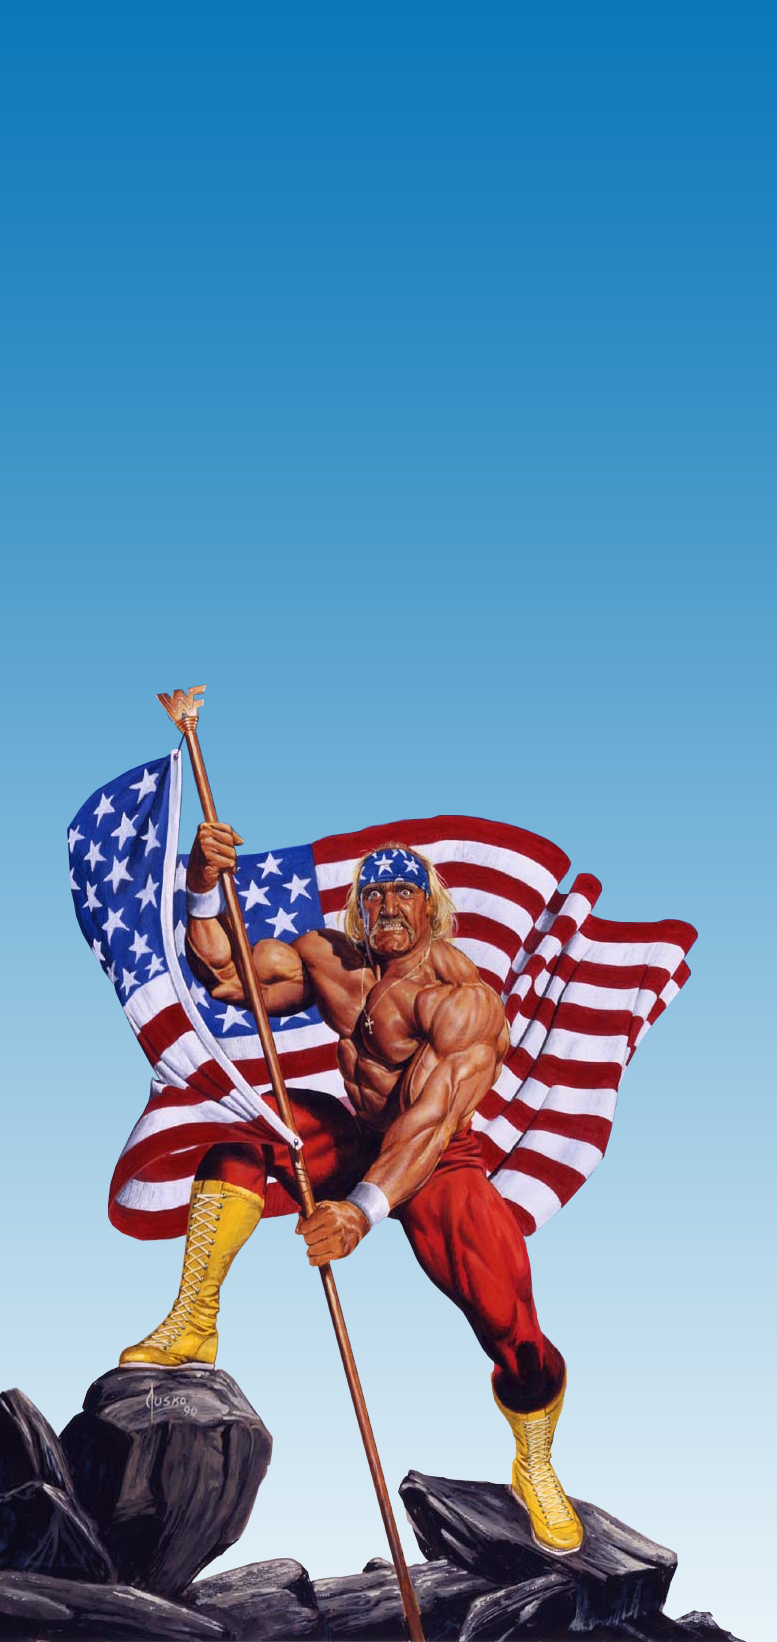 gym bodybuild muscle Hulk Hogan painting that was used on everything from buses to billboards